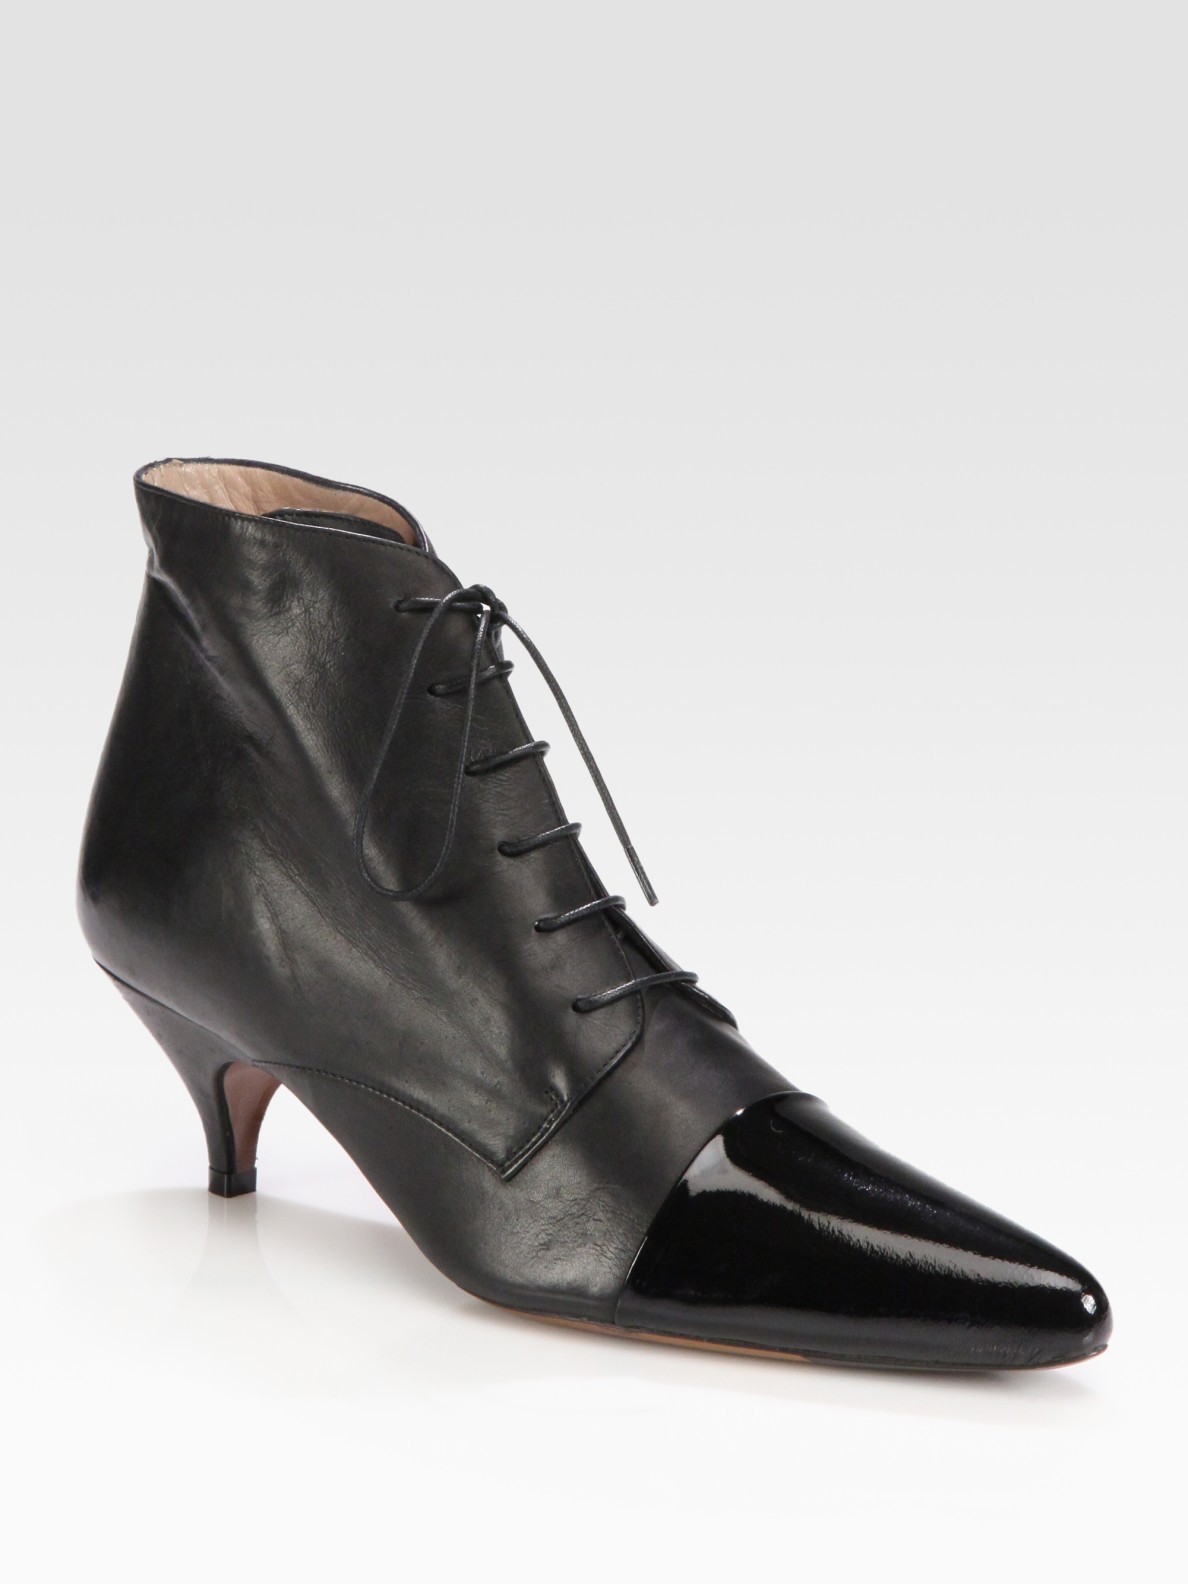 336f2b8692f Lyst - Rochas Lace-up Leather Point Toe Ankle Boots in Black